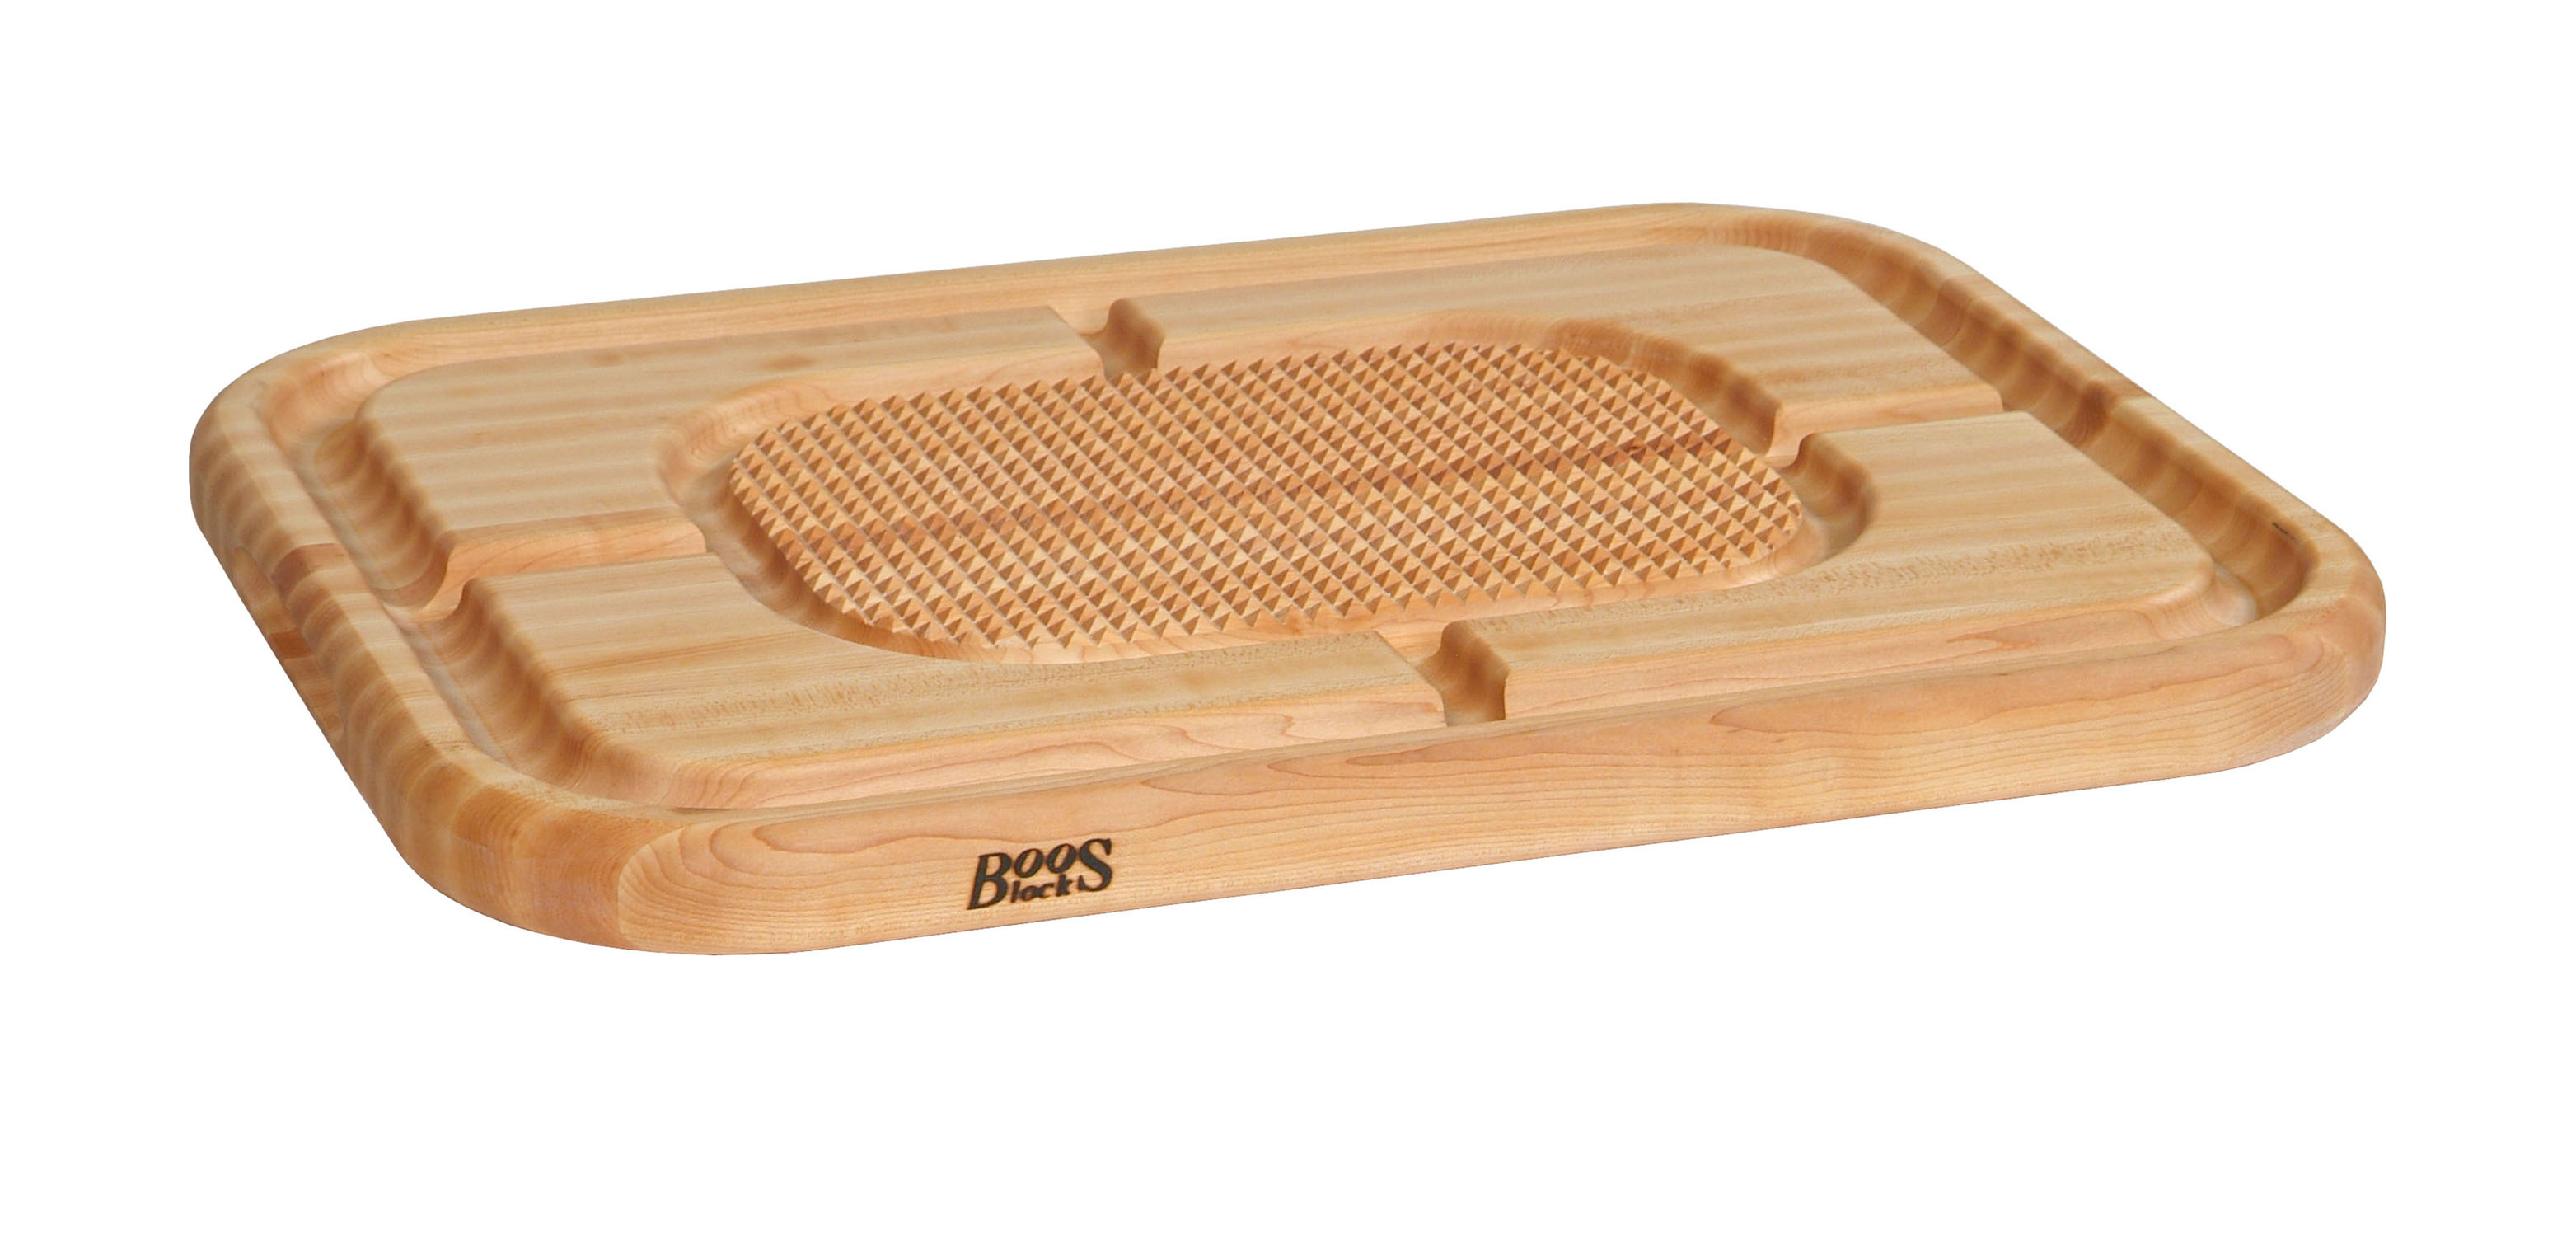 Boos Mayan Maple or Walnut Carving Board - 24x18 - Pyramids & Groove